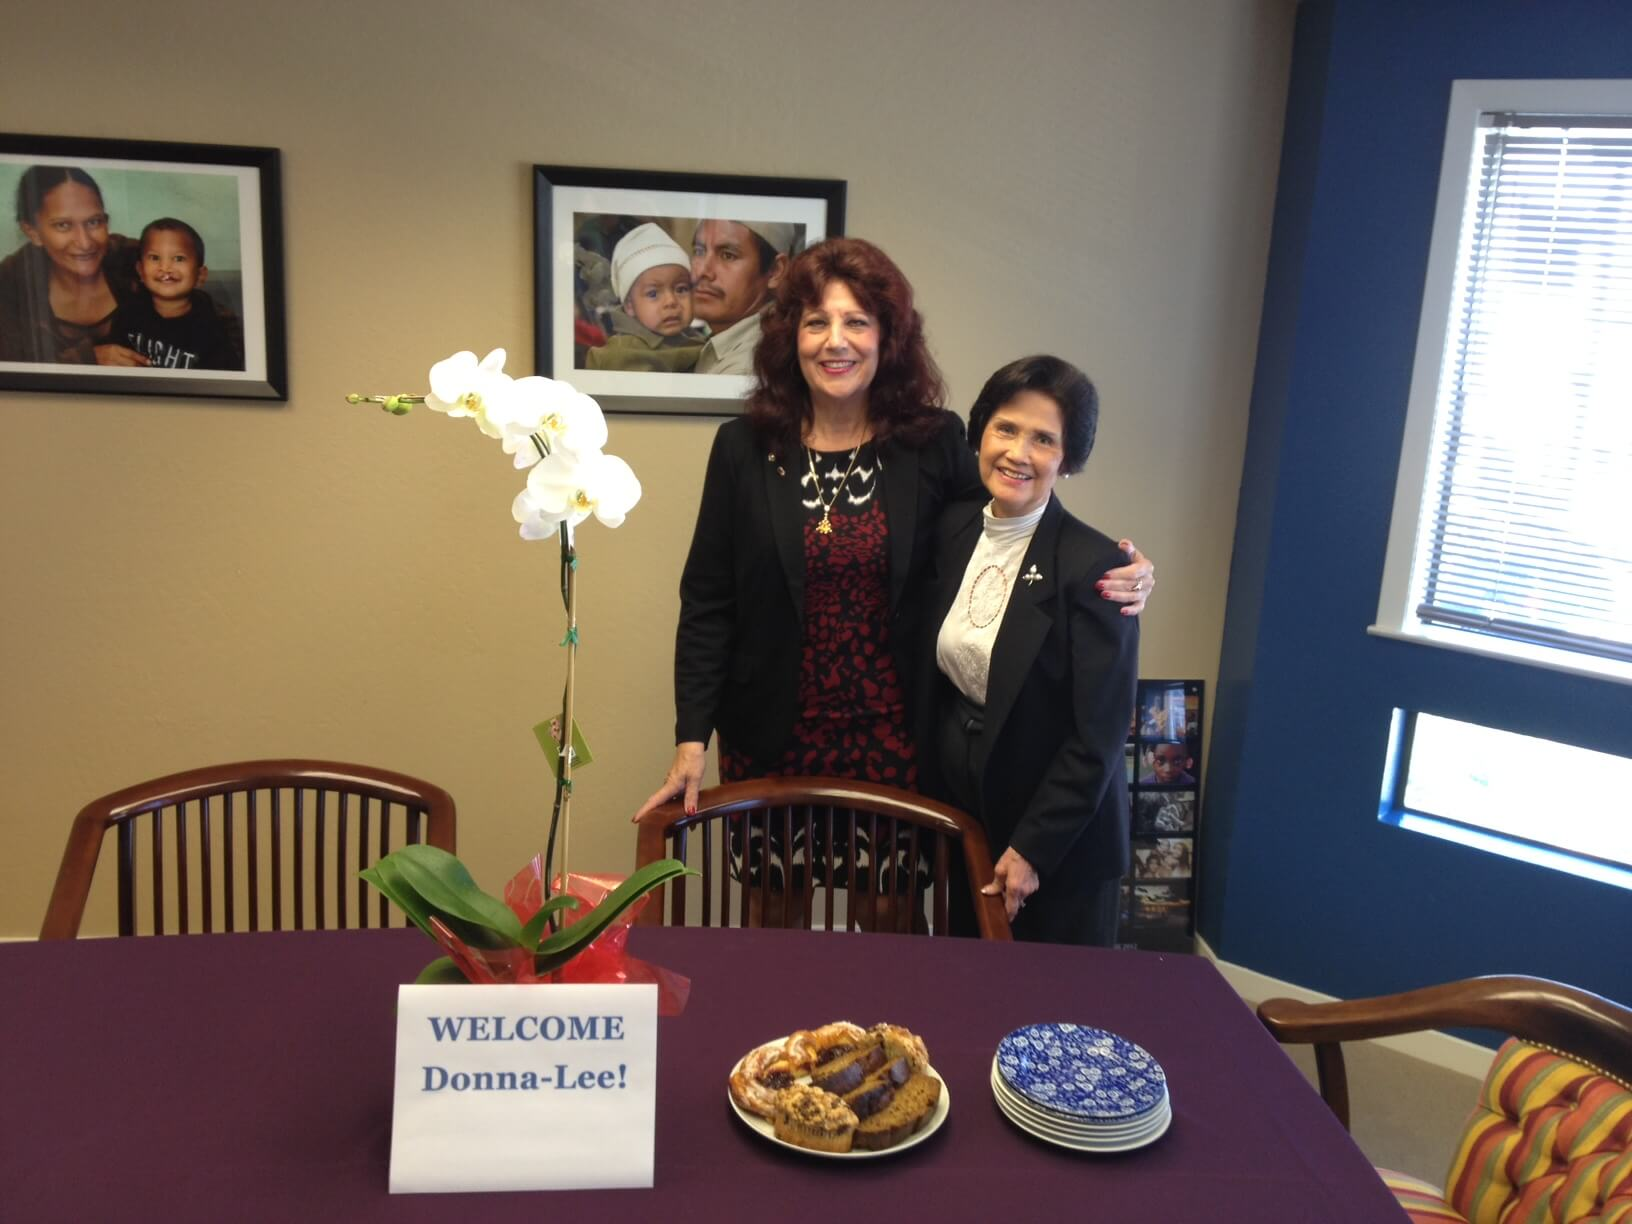 Welcoming new Executive Director PDG Donna-Lee Young Rubin